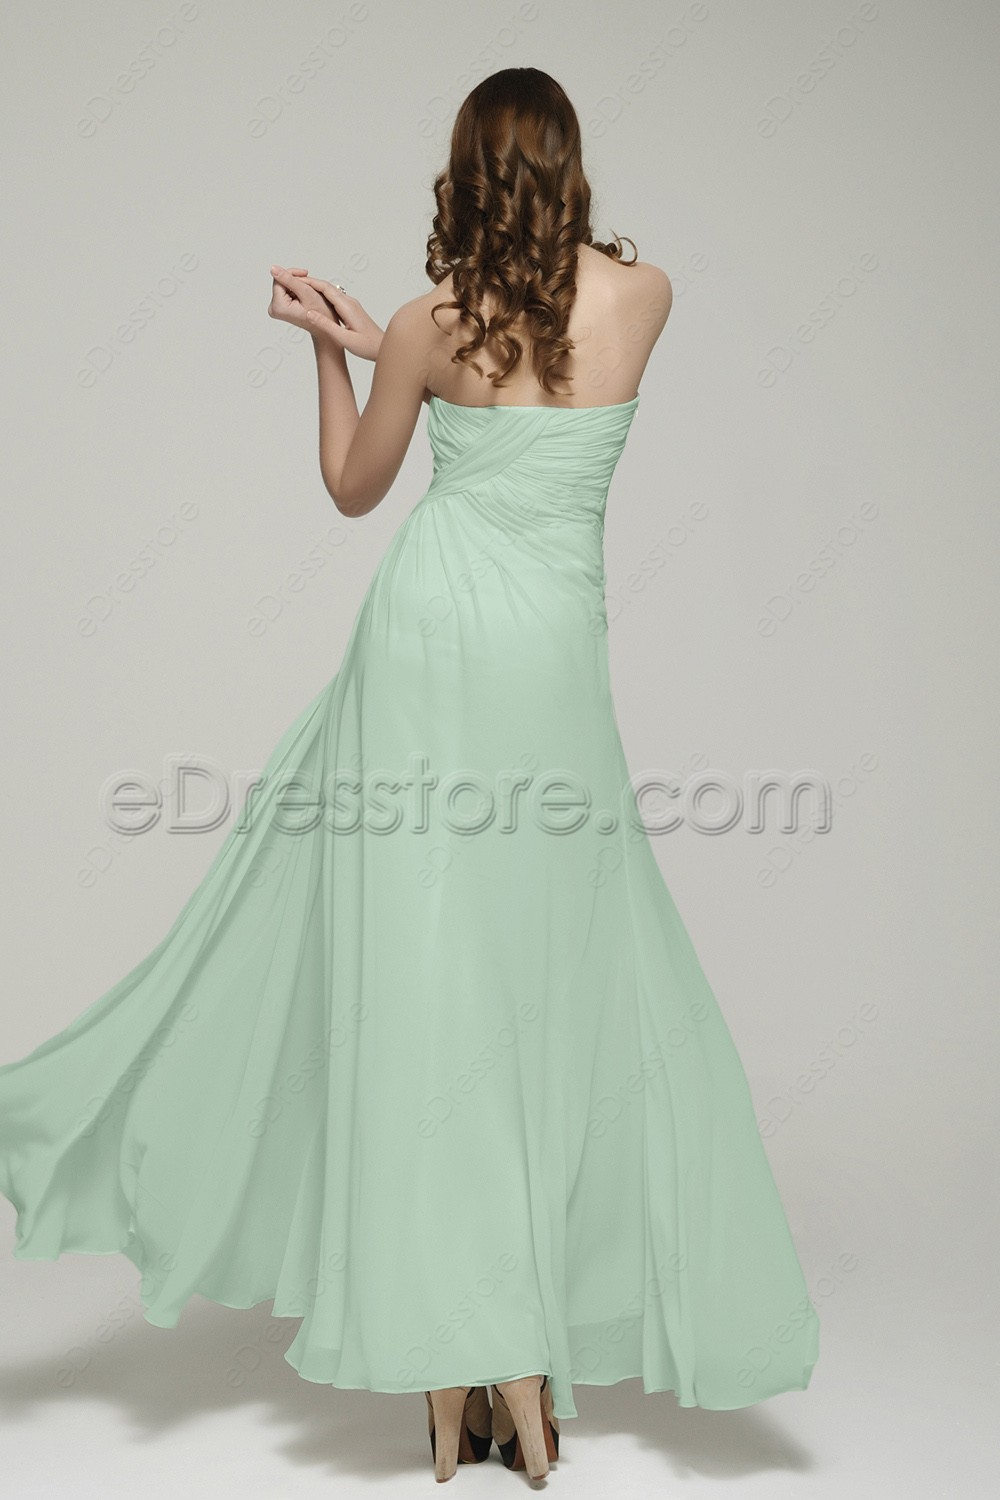 Pastel green maid of honor dresses sweetheart bridesmaid dress for Pastel green wedding dress